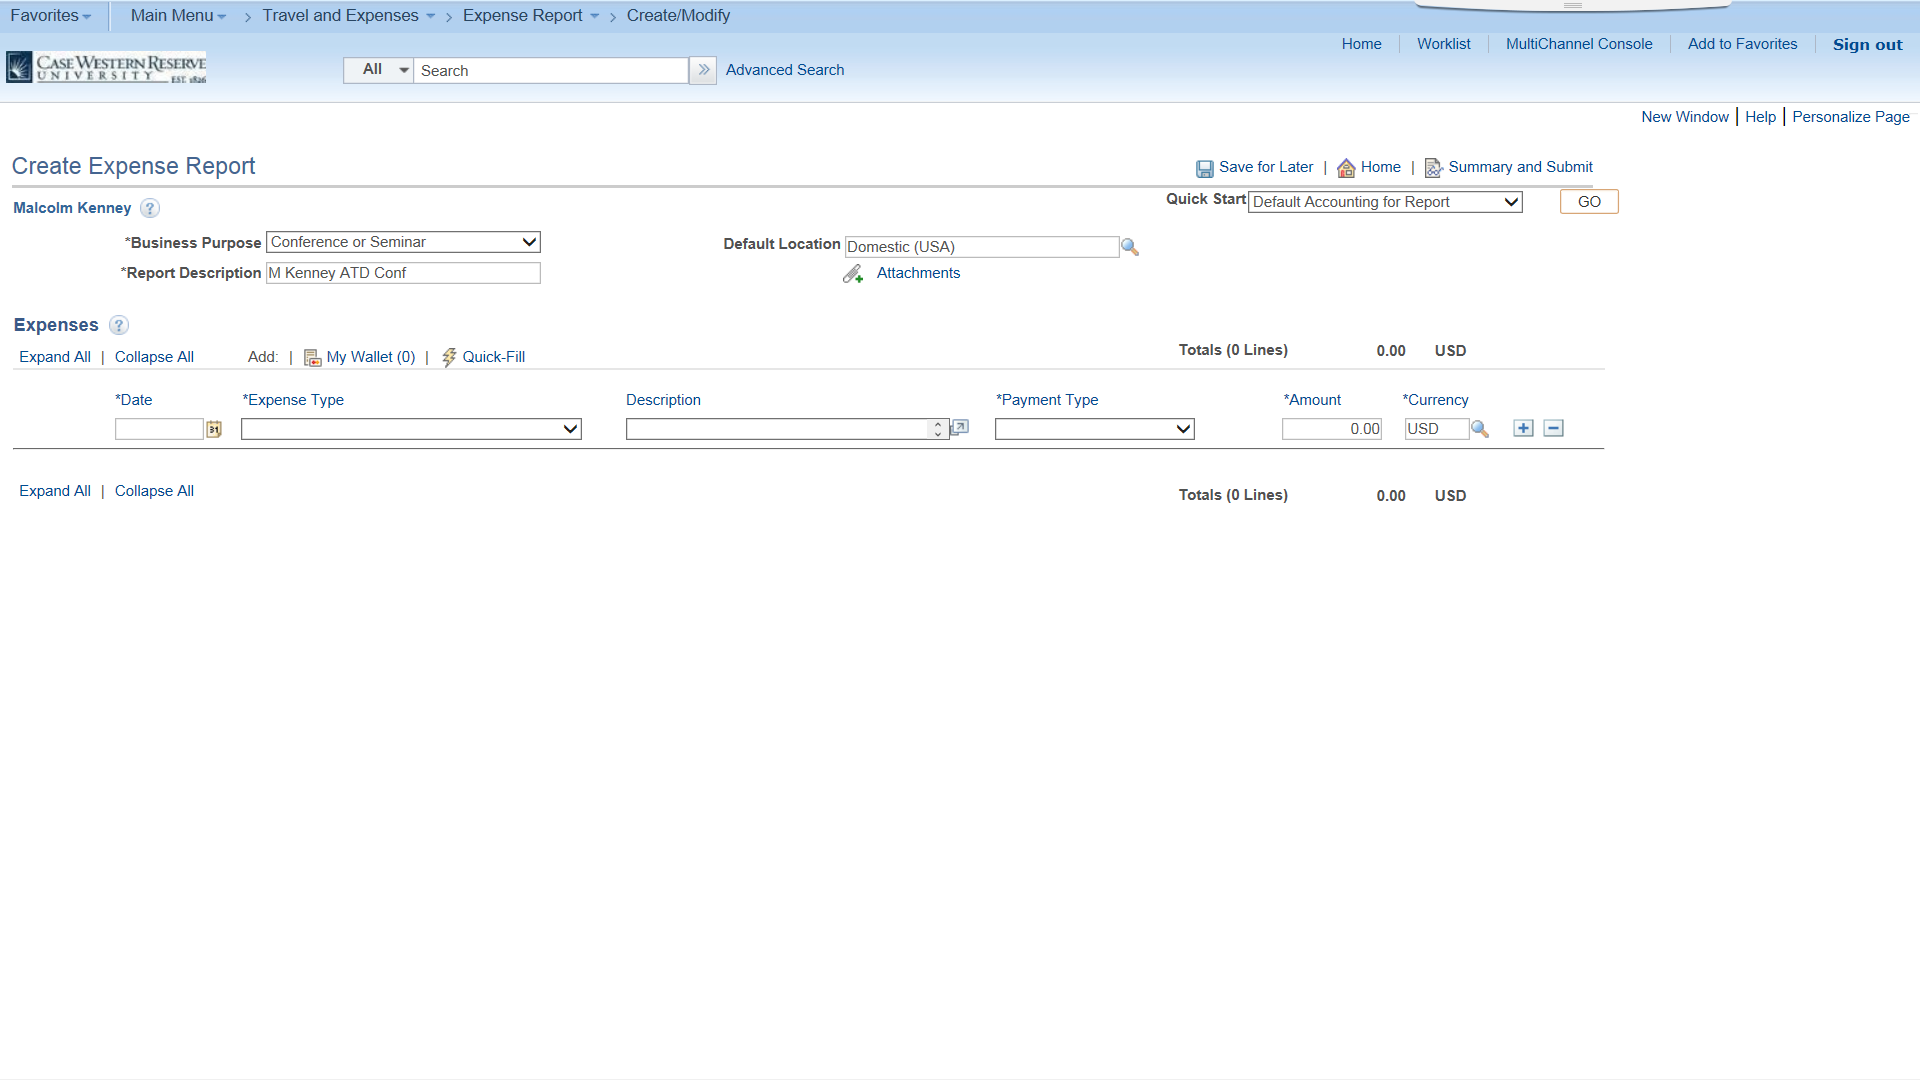 PeopleSoft Financials screen shot displaying Create Expense Report form